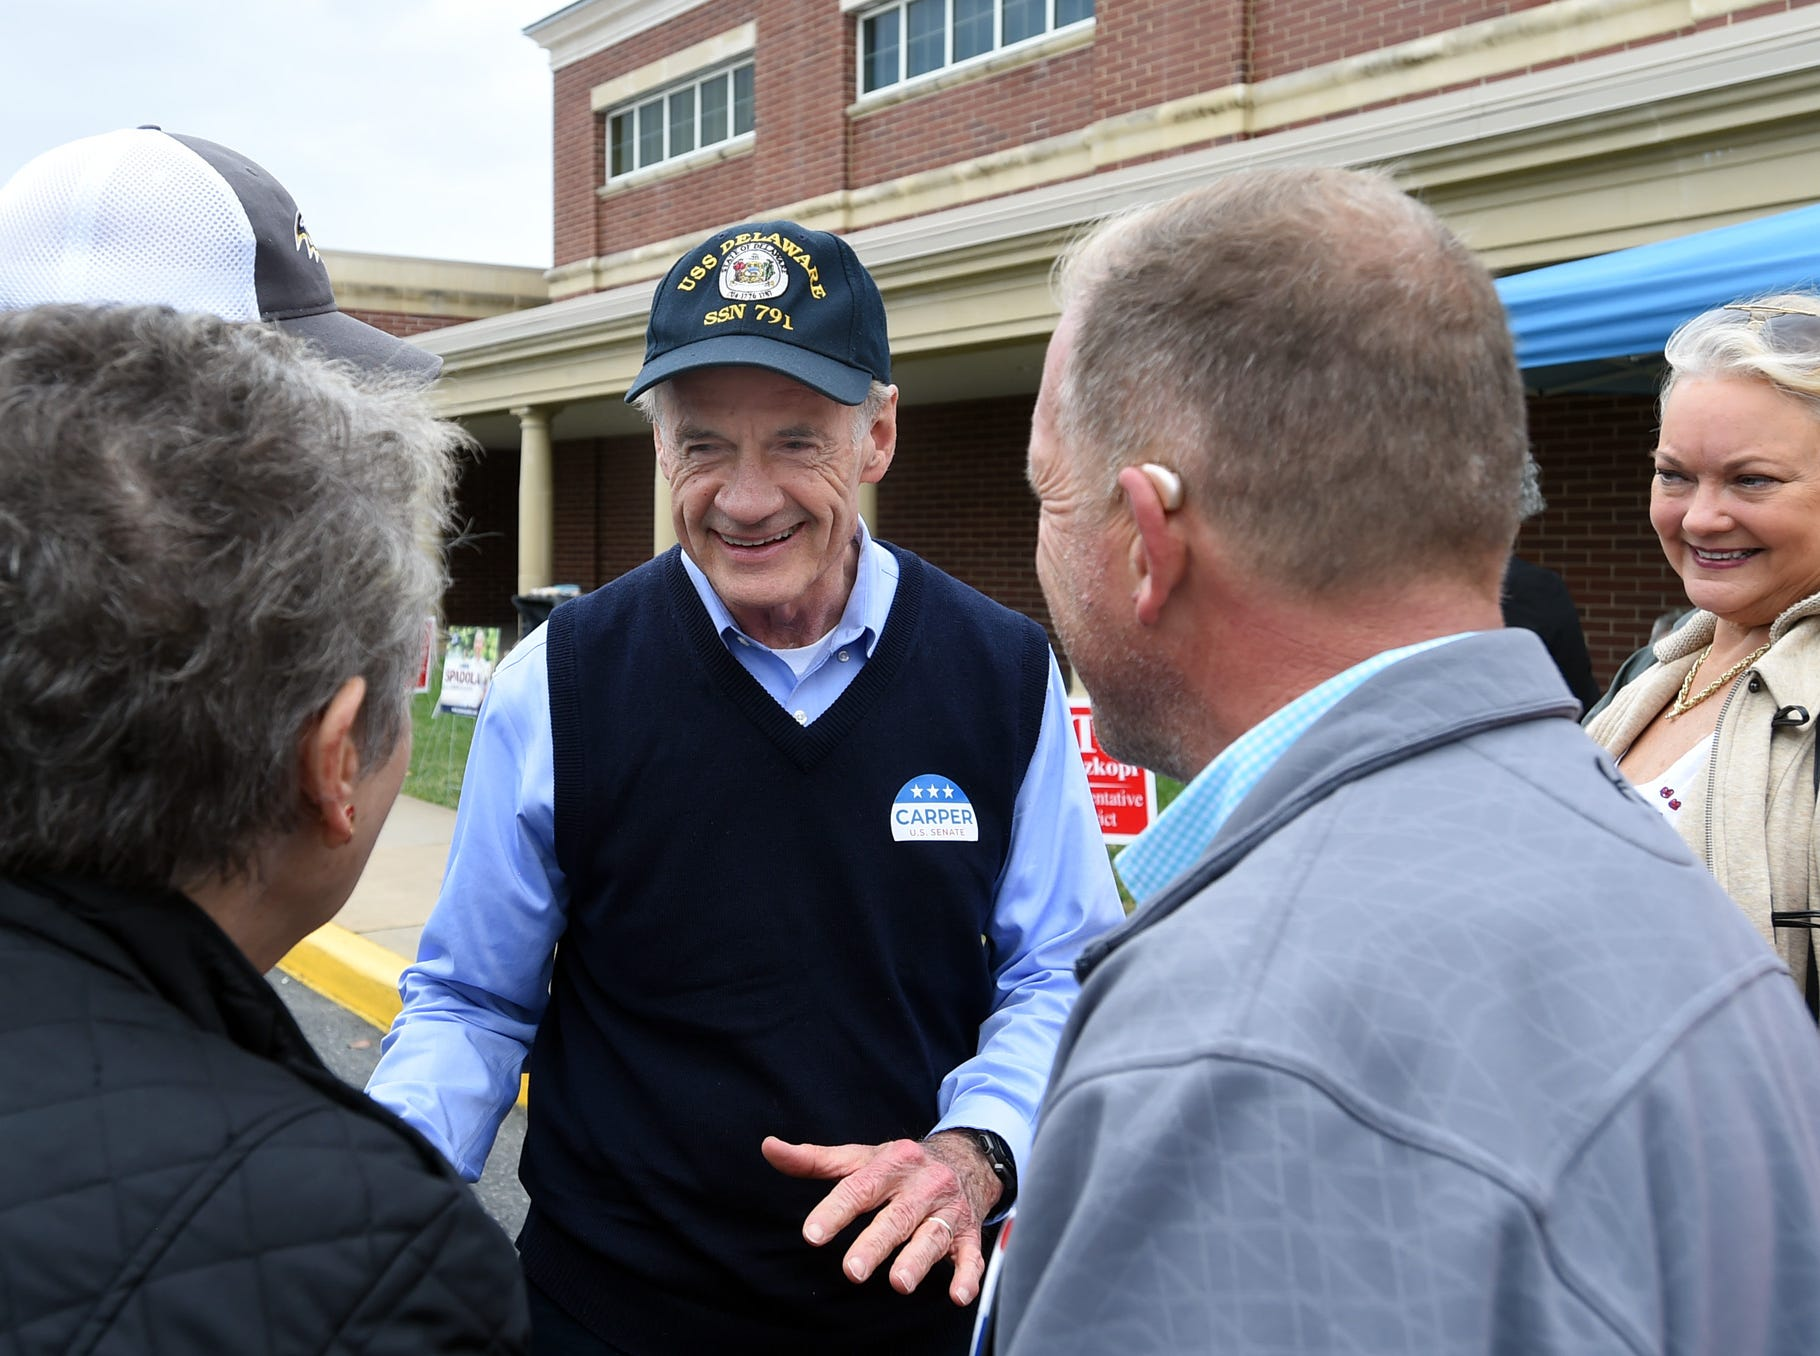 U.S. Senator Tom Carper greets voters at Cape Henlopen High School near Lewes as turnout in eastern Sussex County has been steady at polling places as candidates still seek supporters for their support. Special to the News Journal / CHUCK SNYDER